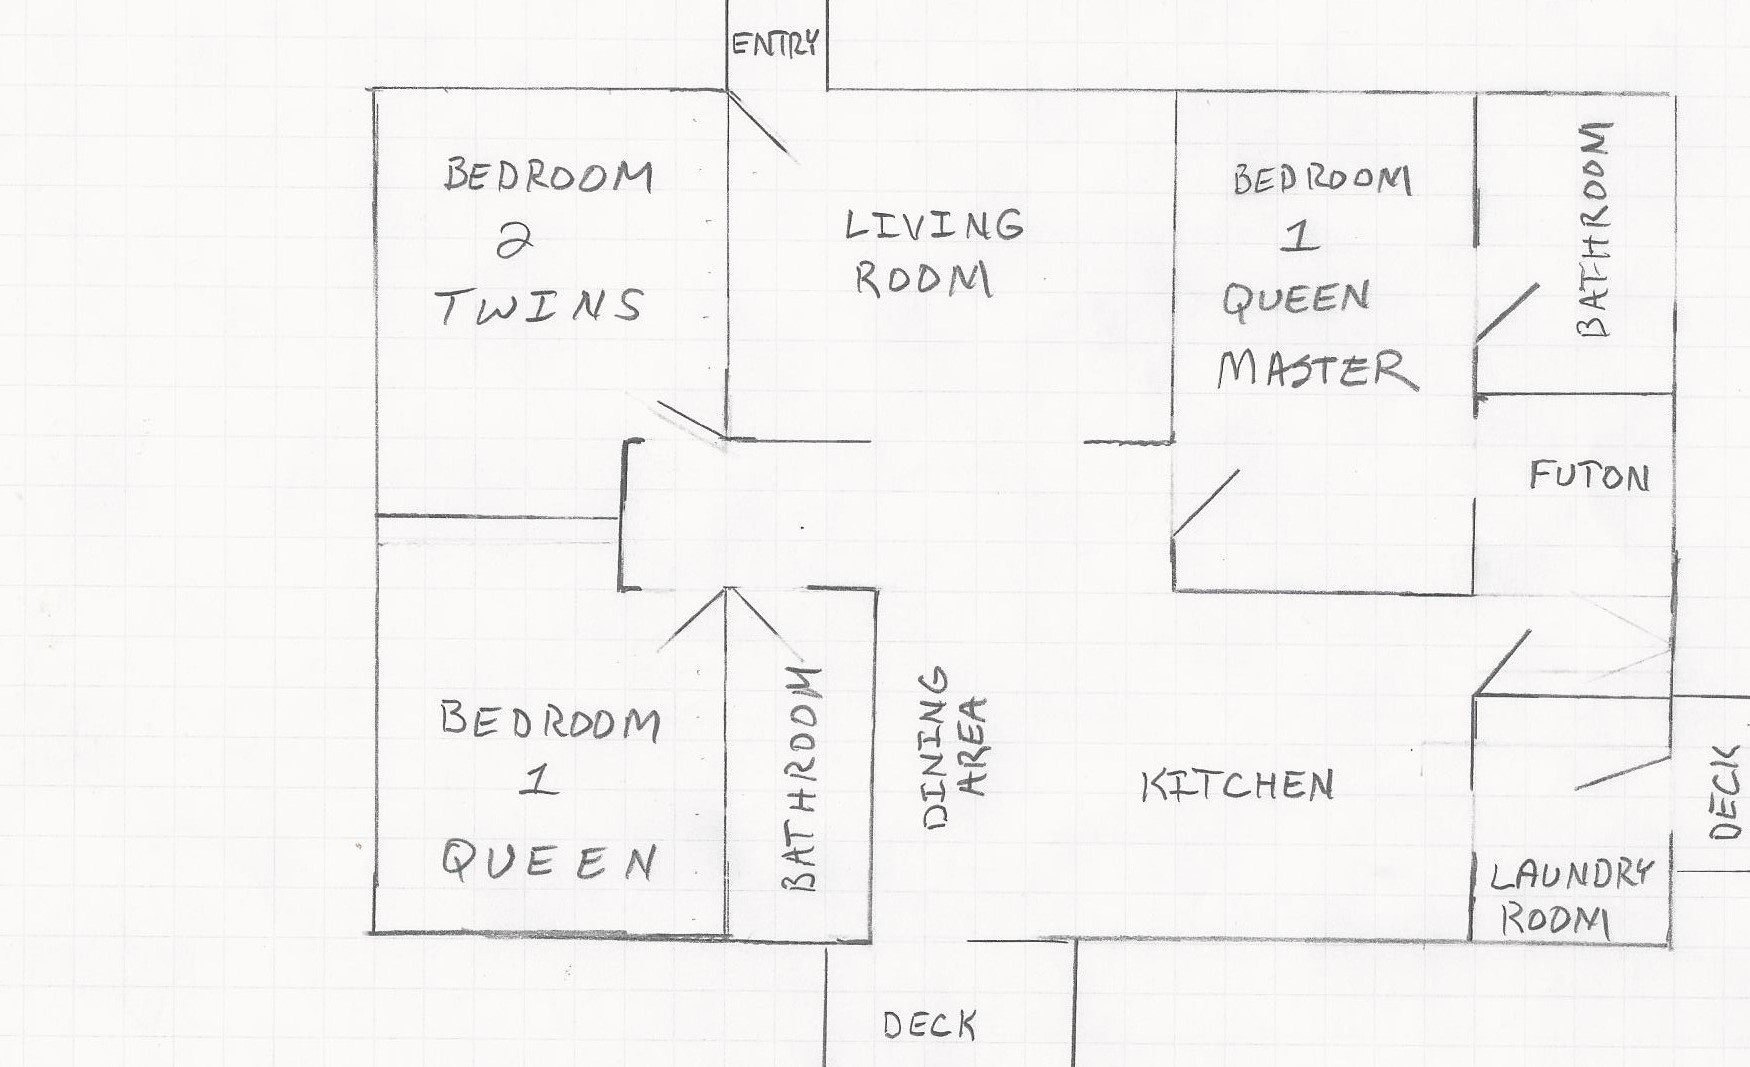 hight resolution of  and birch diagram cedar house diagram full ranch diagram